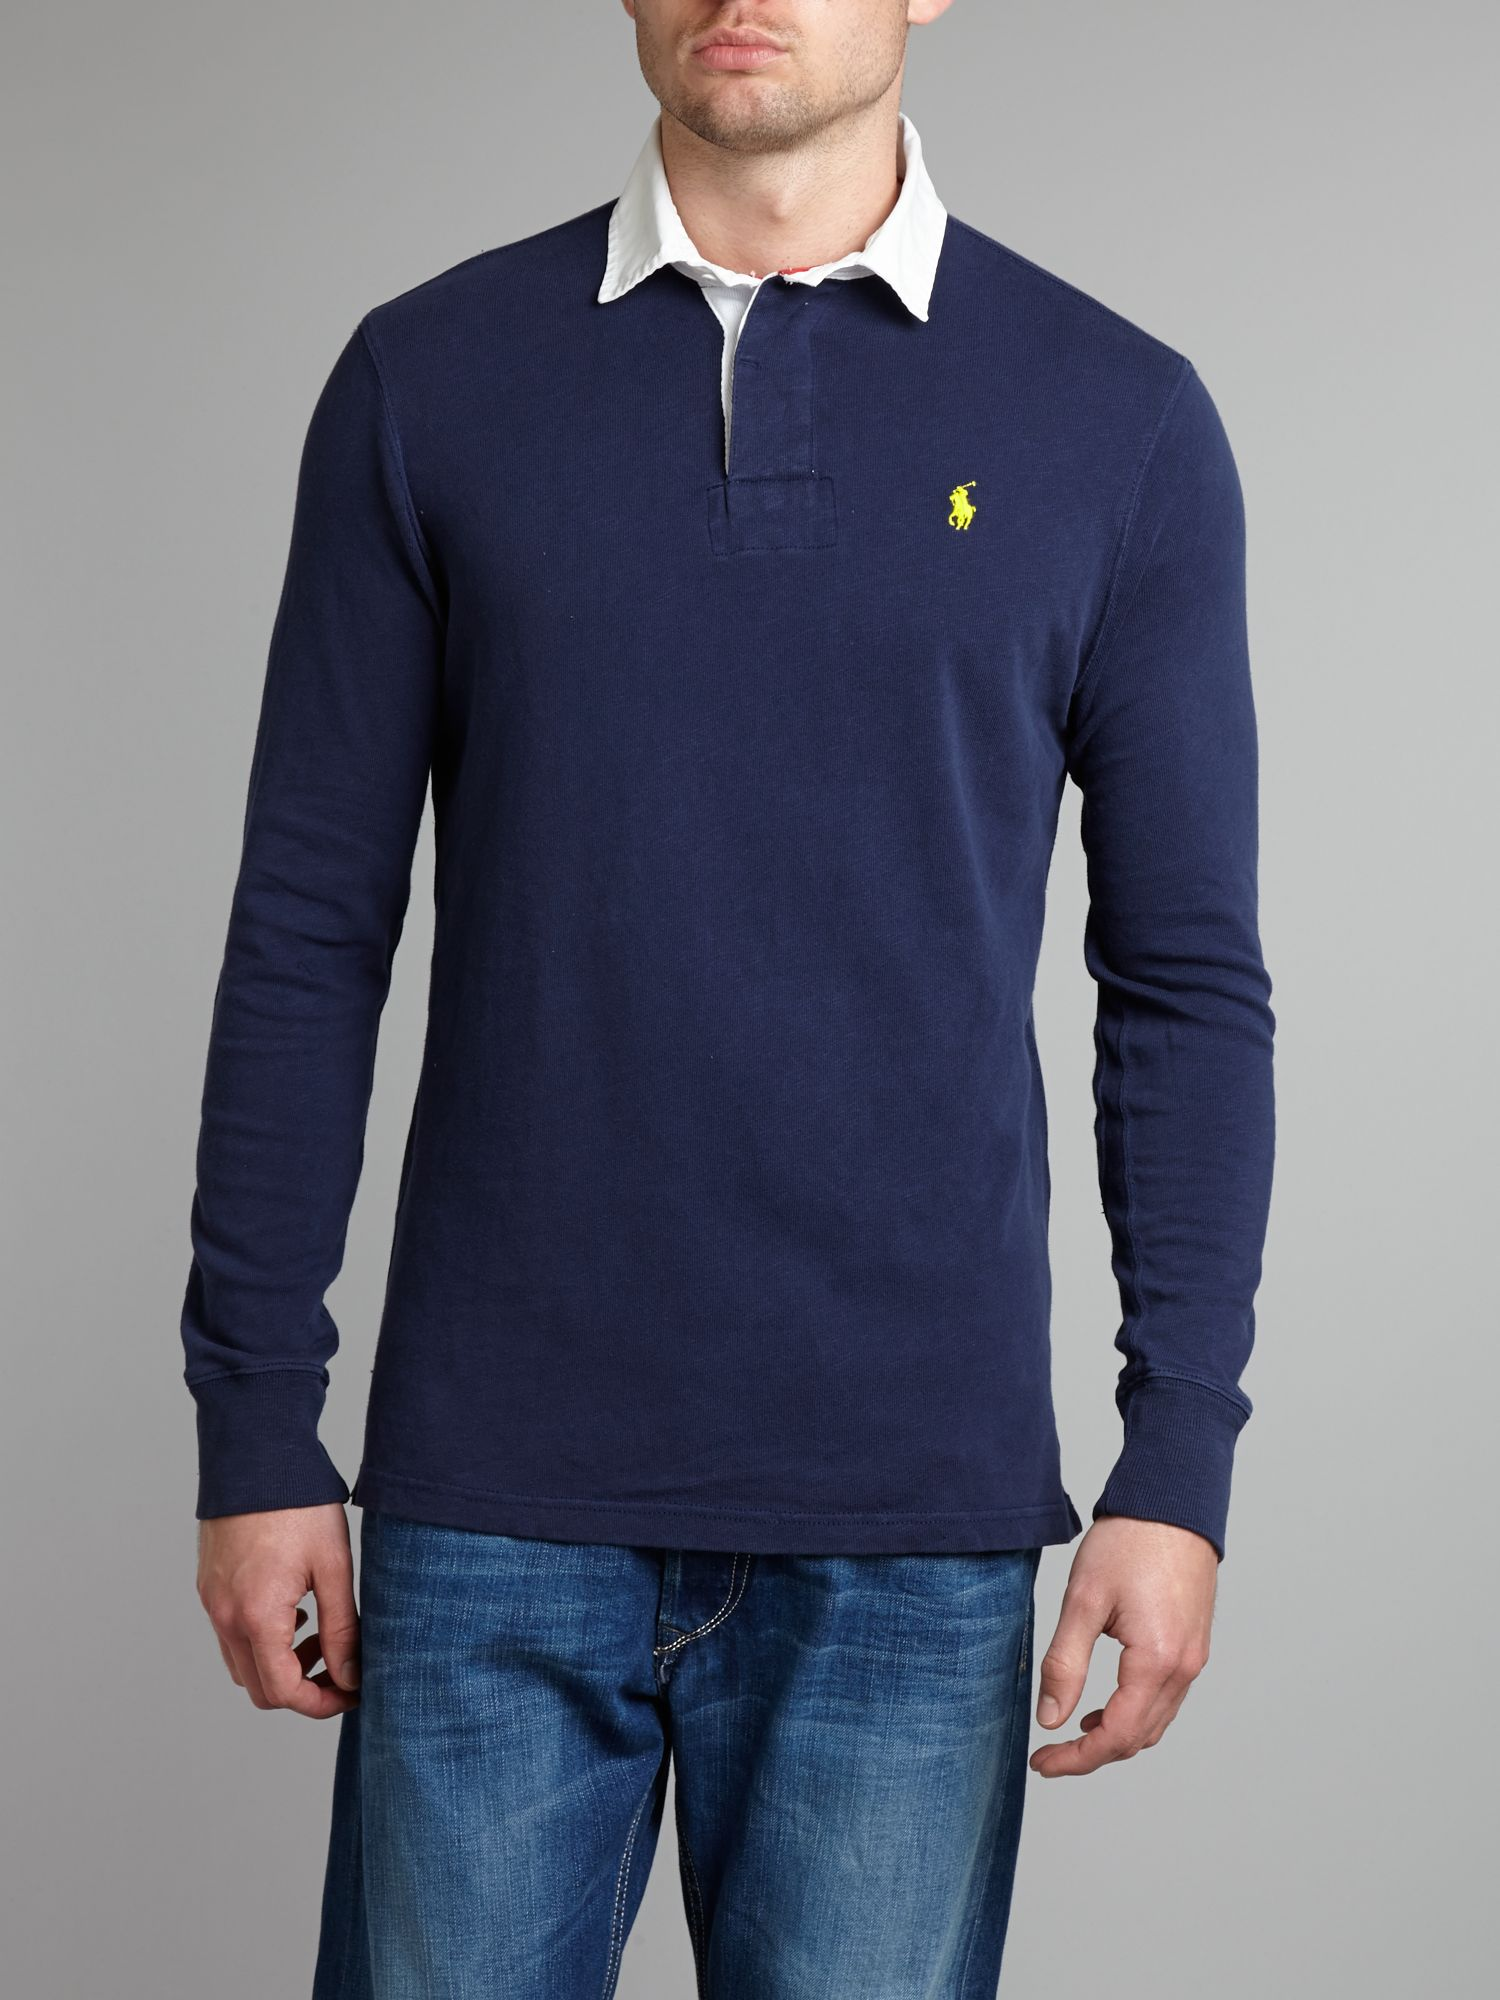 ralph lauren cool mens ralph lauren tops